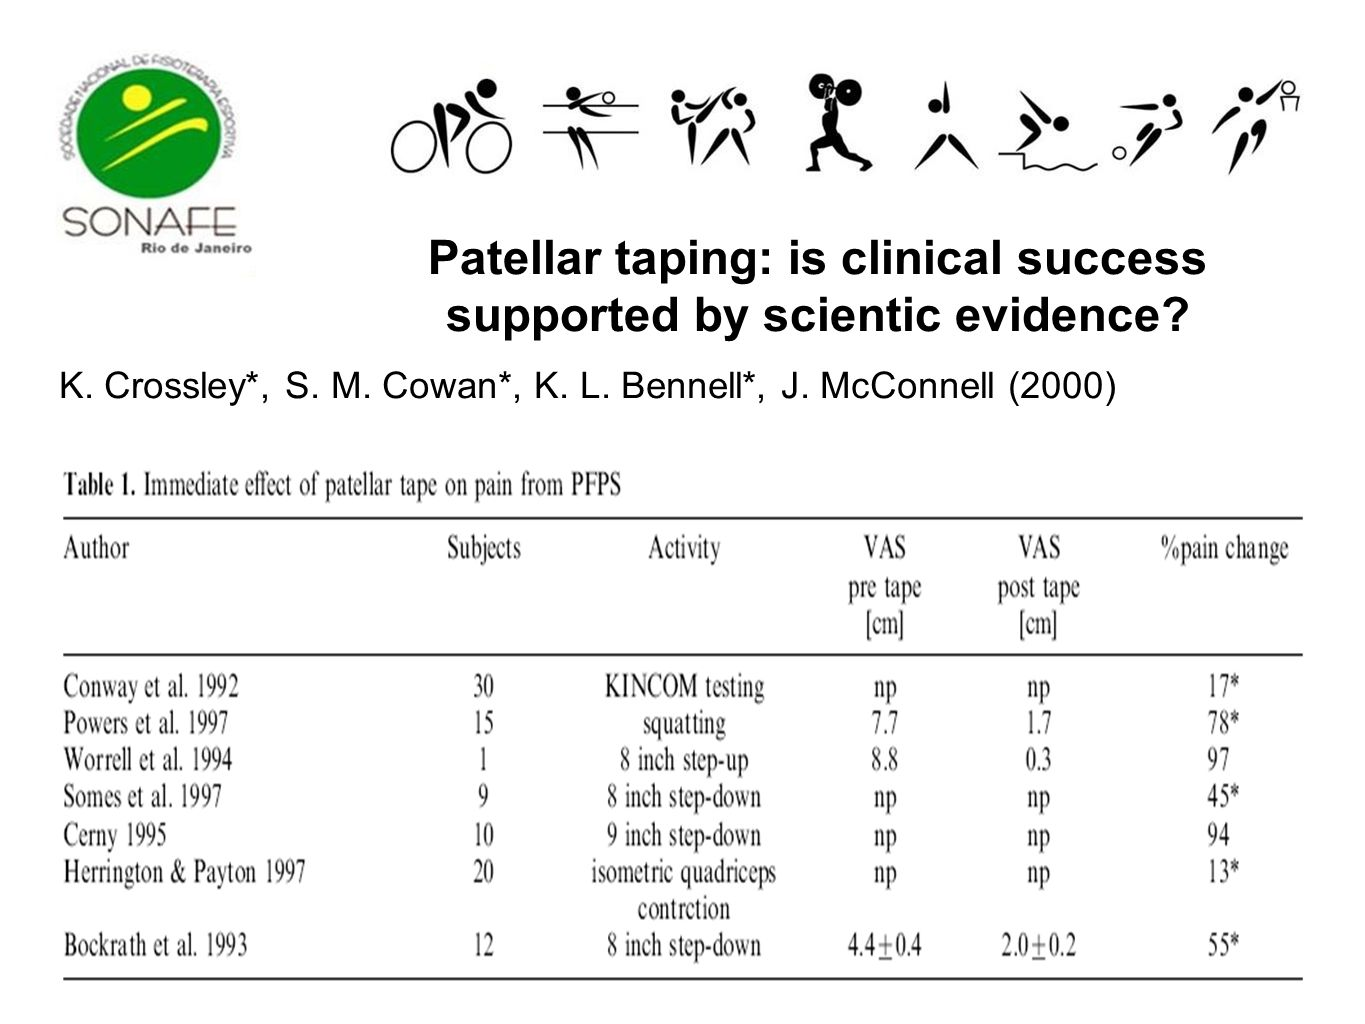 Patellar taping: is clinical success supported by scientic evidence